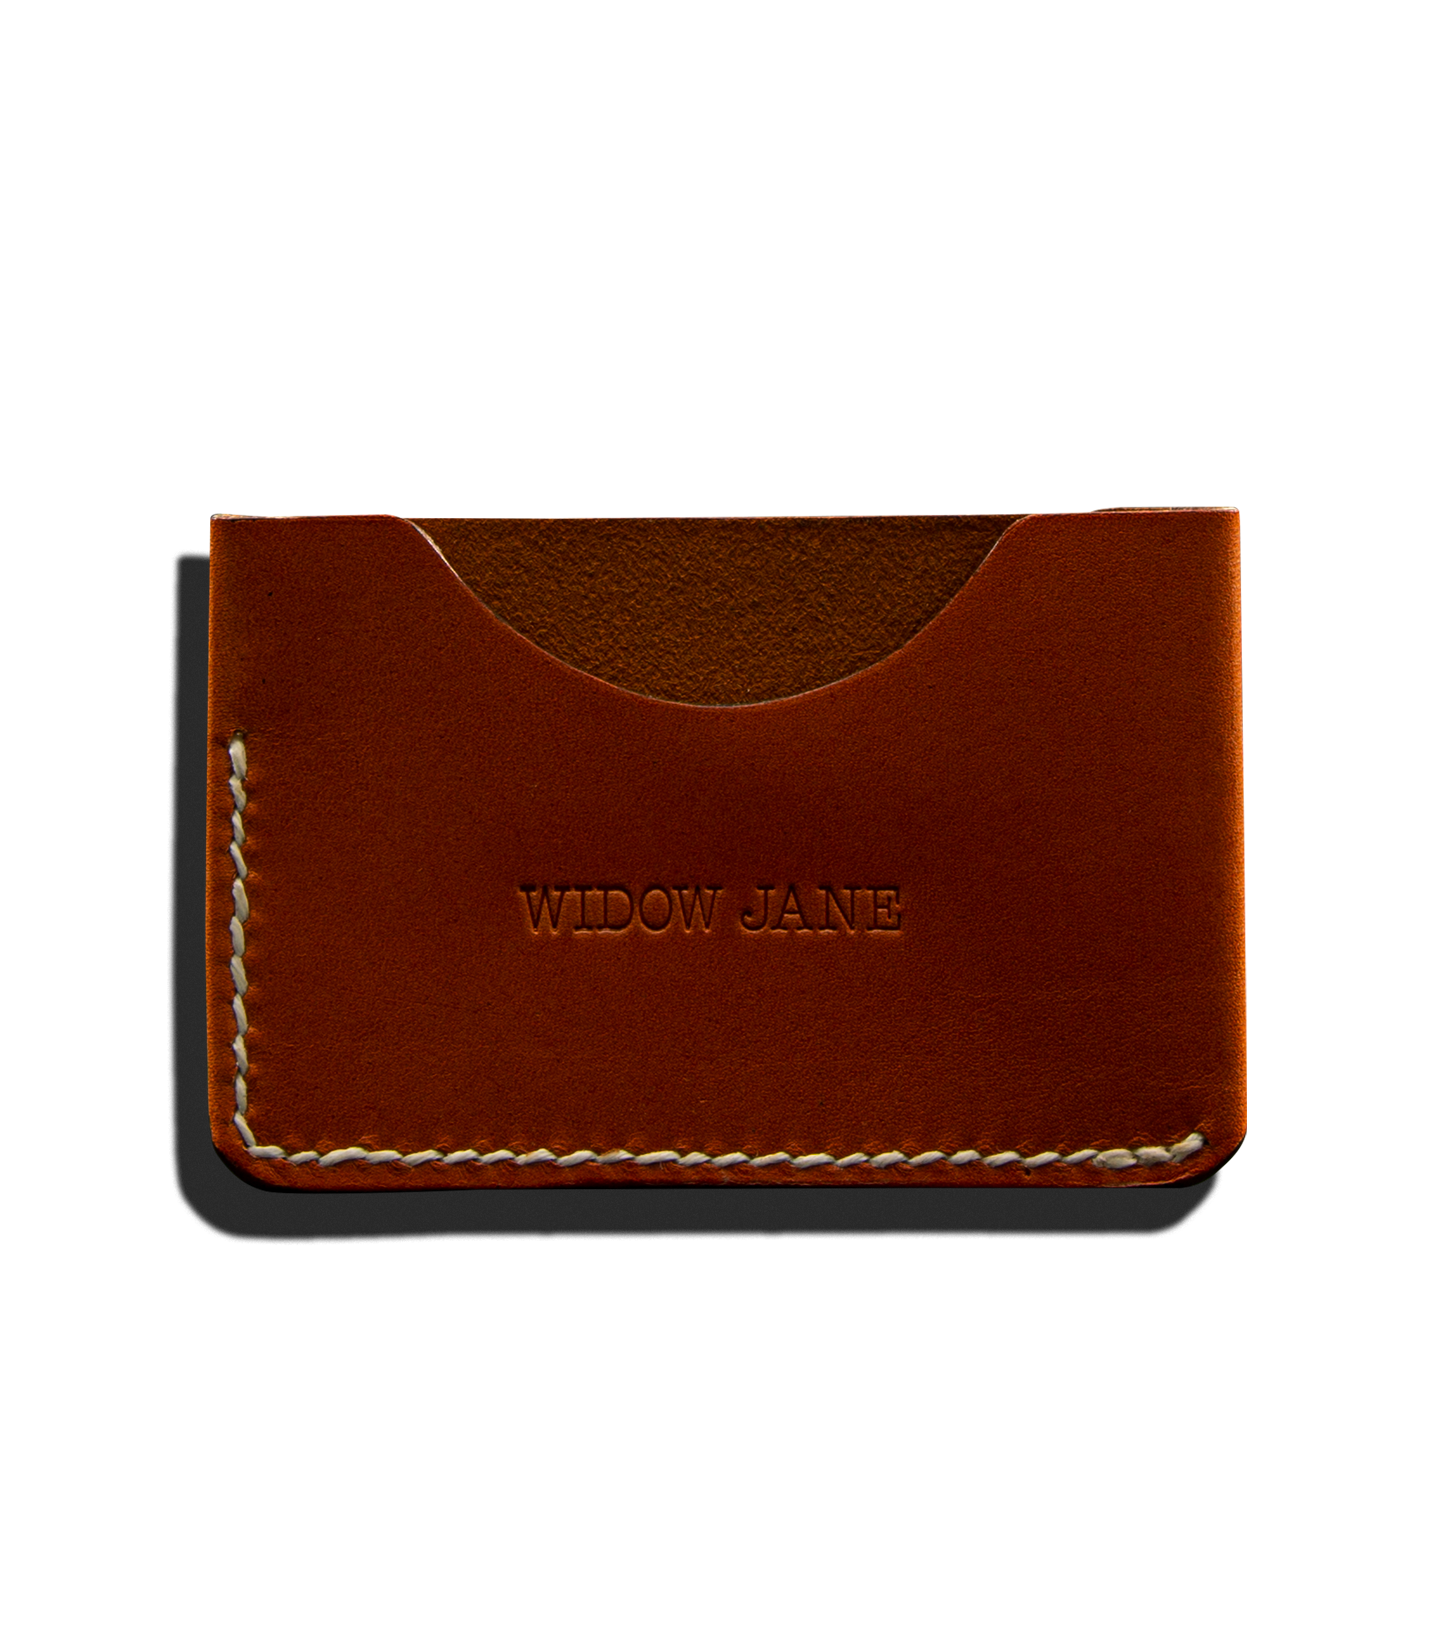 Widow Jane Leather Wallet product shot